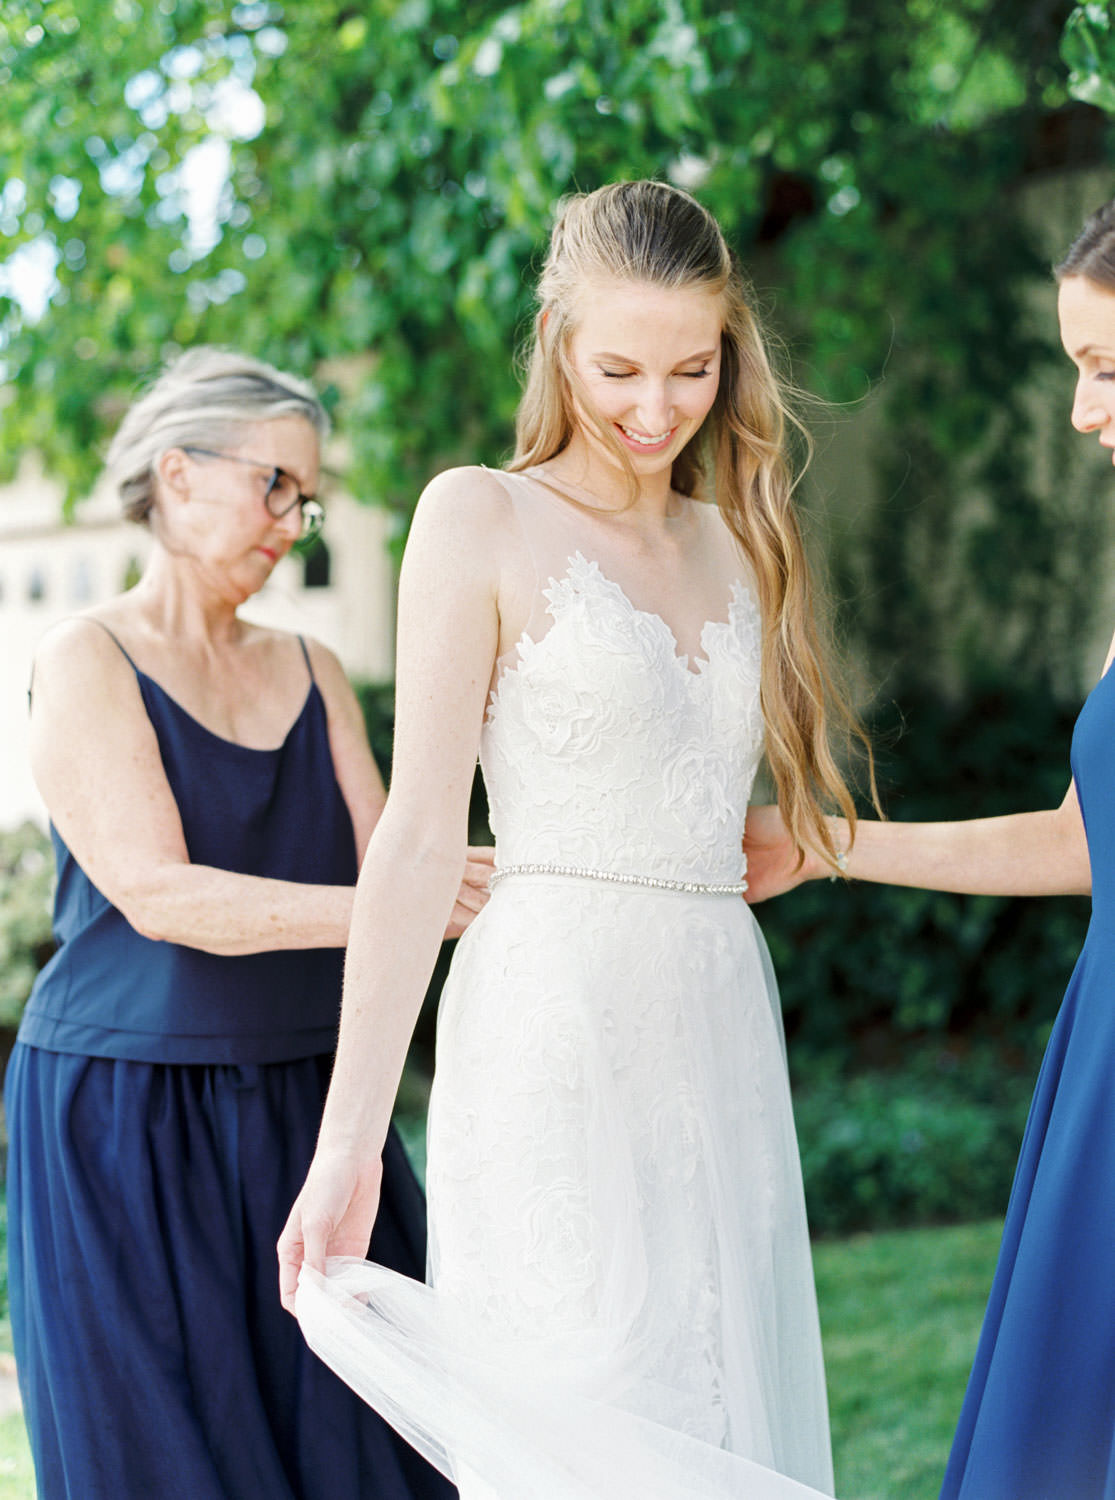 Bride getting into wedding dress outside with mom and sister captured on film, Cavin Elizabeth Photography